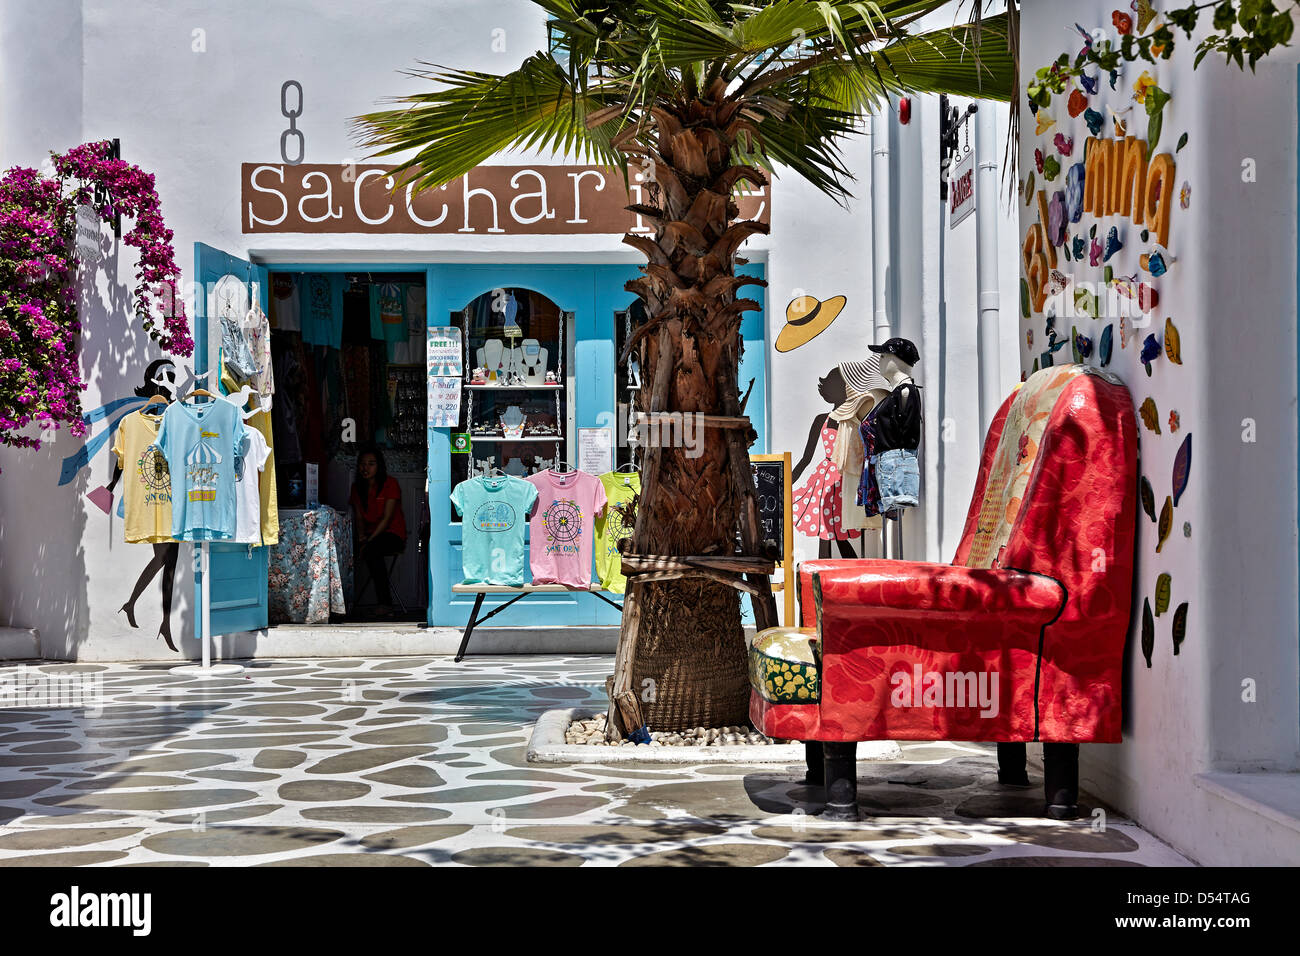 Greece styled shopping area and street replicated at a Thai shopping mall. Thailand S. E. Asia - Stock Image